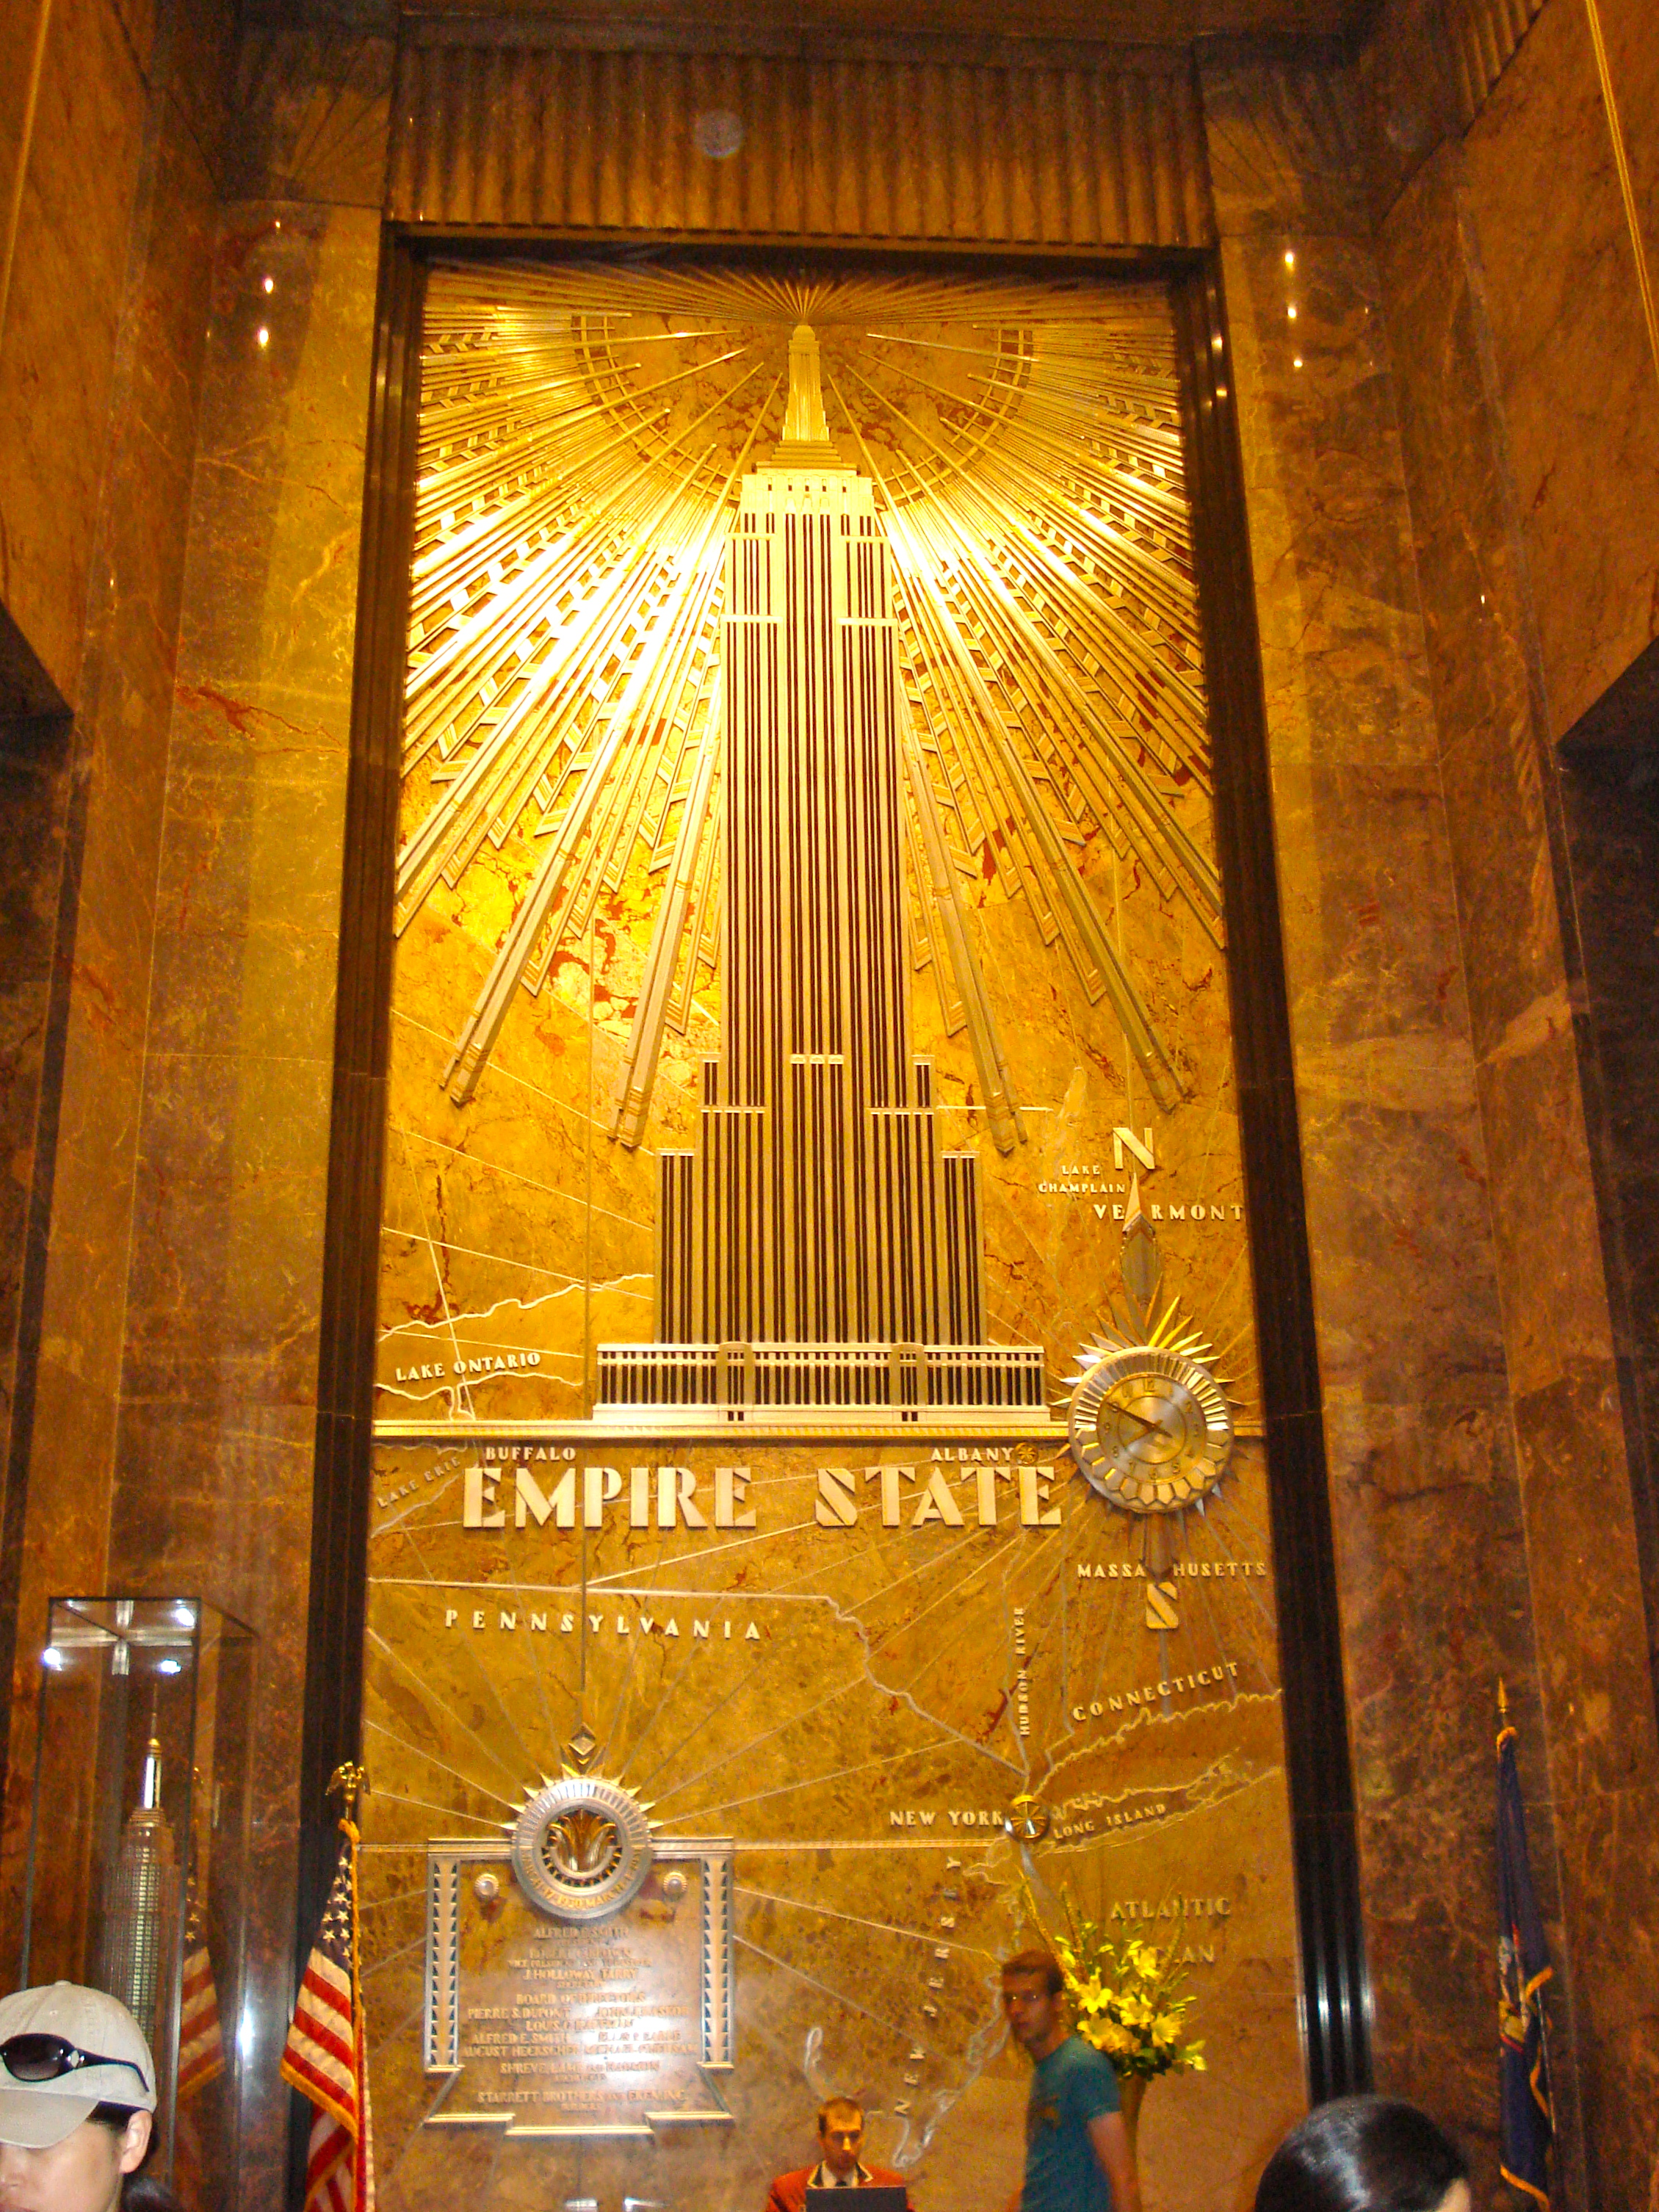 Inside the lobby of the Empire State Building